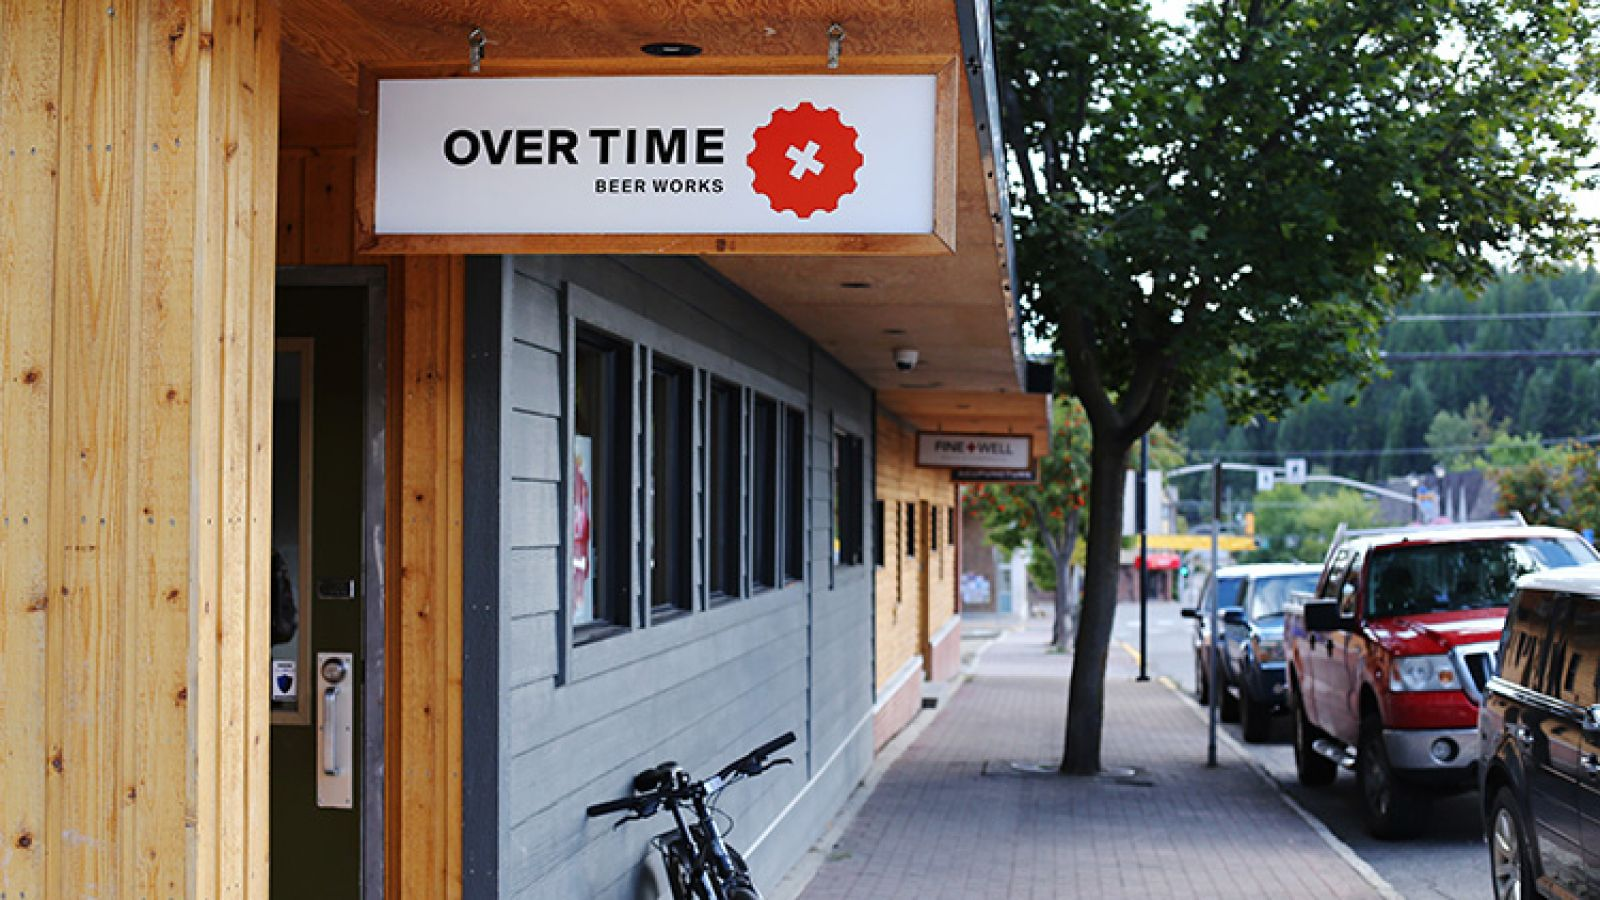 Overtime Beer Works in Kimberley.